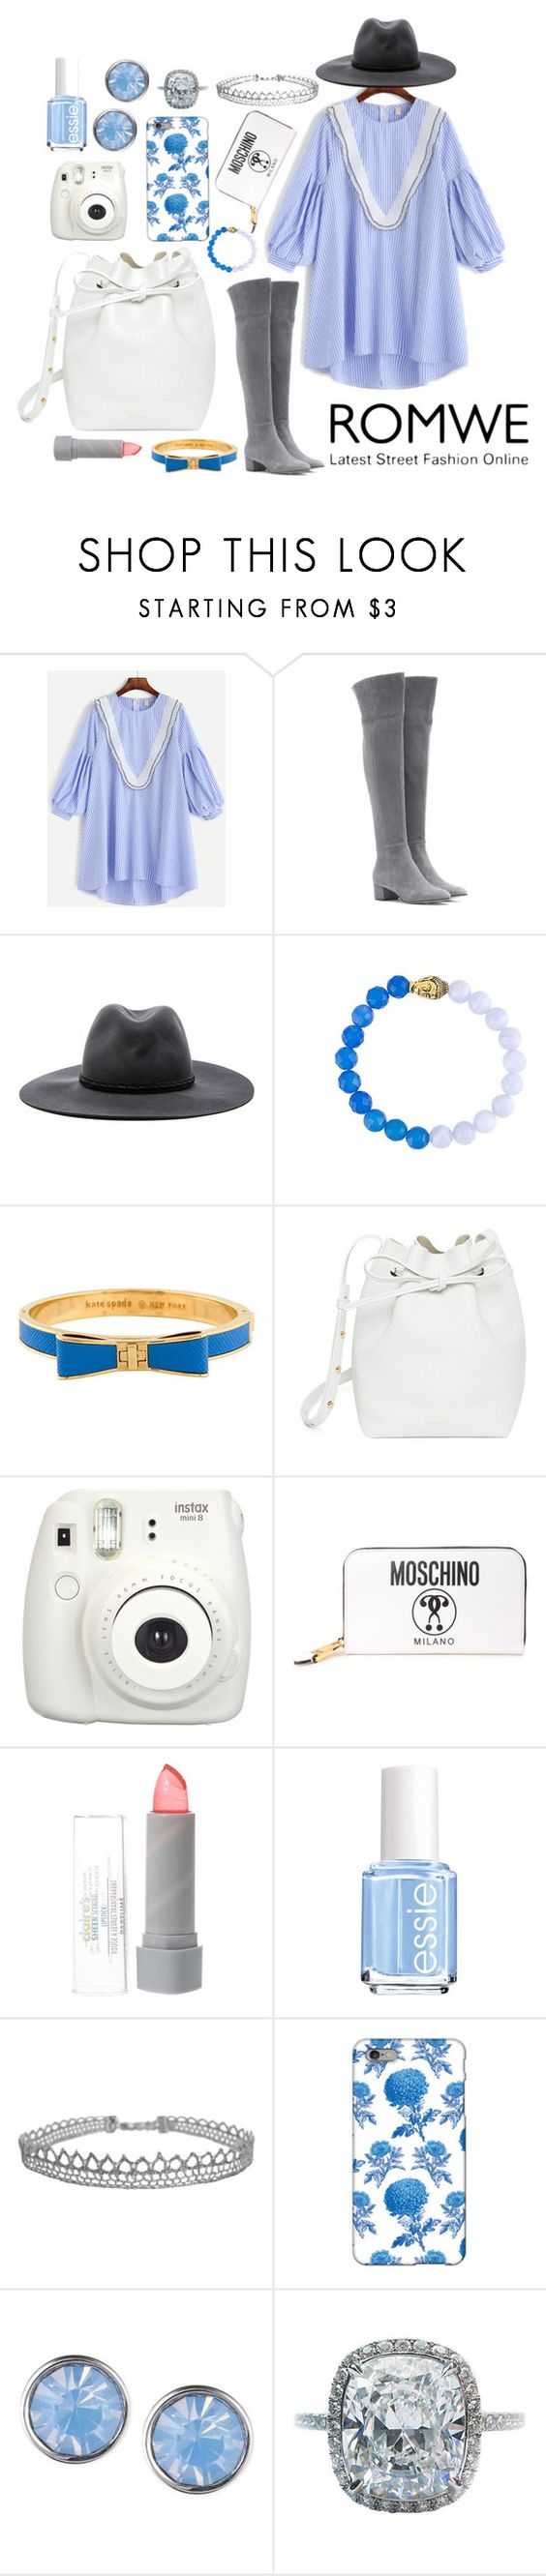 """romwe dress"" by roos-sparnaaij ❤ liked on Polyvore featuring Gianvito Rossi, rag & bone, Kate Spade, Mansur Gavriel, Fujifilm, Moschino, Glitter Pink, Essie, Humble Chic and Thornback & Peel"